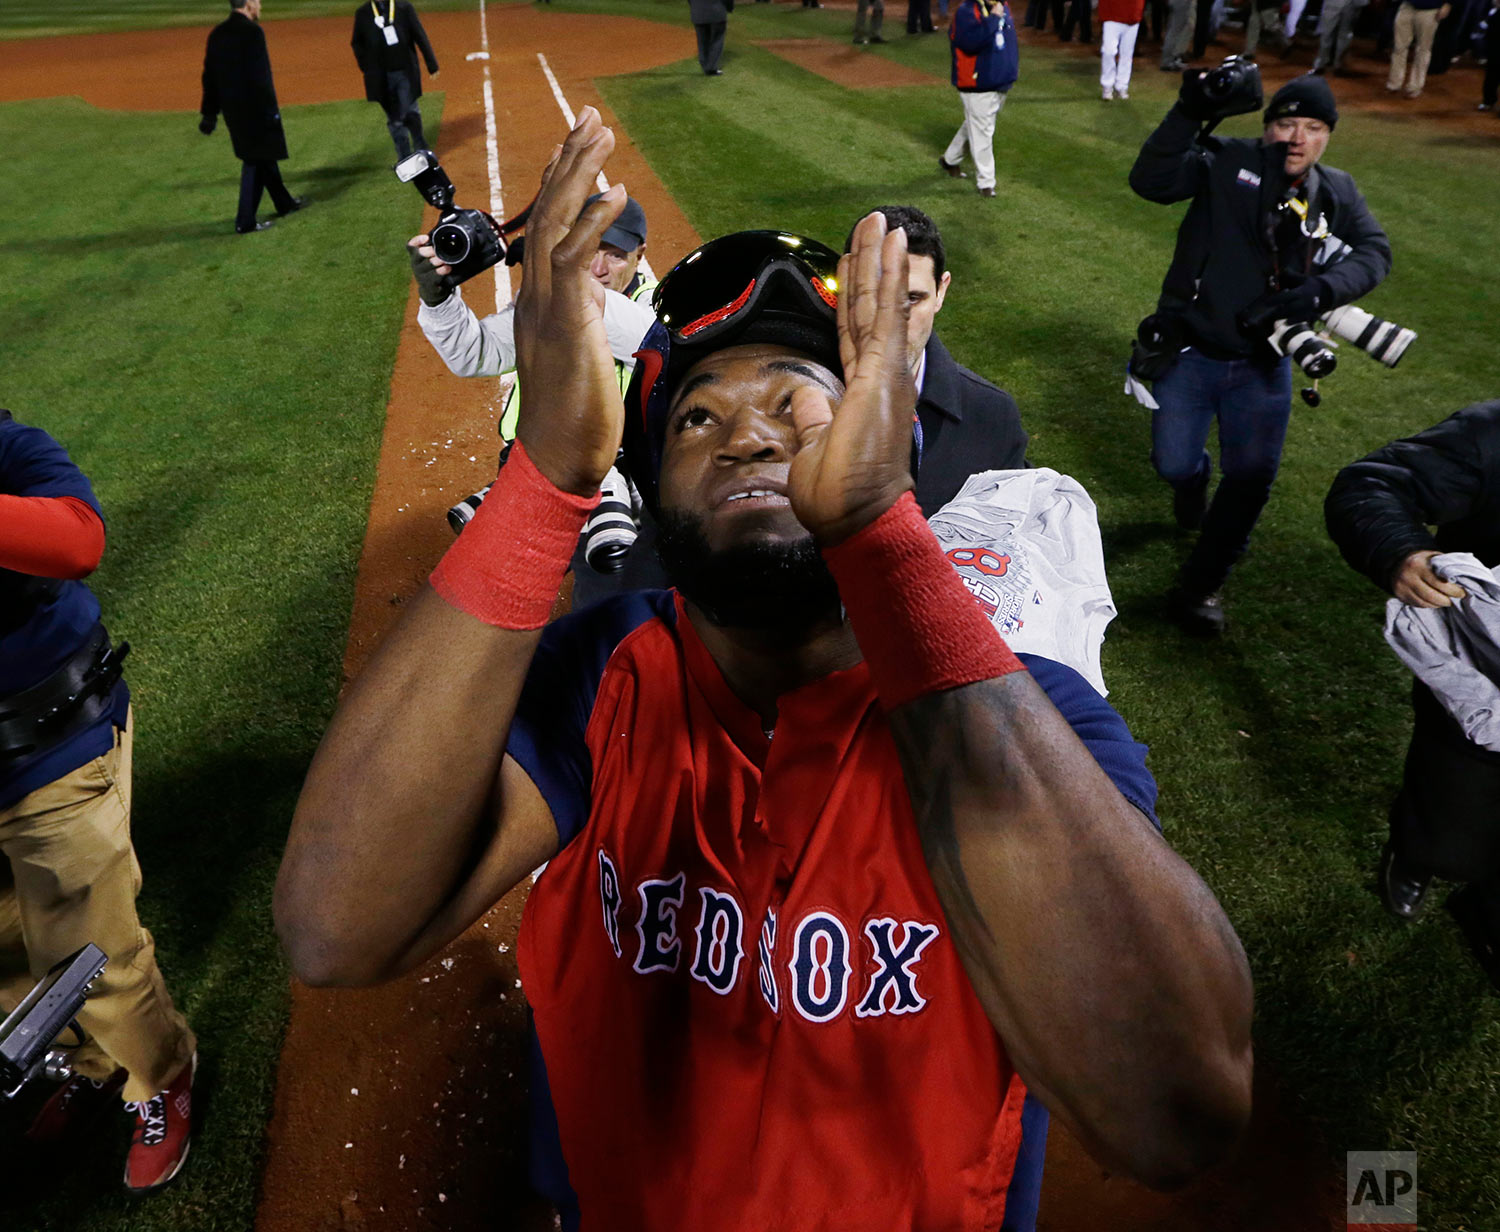 Game 6 of baseball's World Series Wednesday, Oct. 30, 2013, in Boston. The Red Sox won 6-1 to win the series. (AP Photo/David J. Phillip)